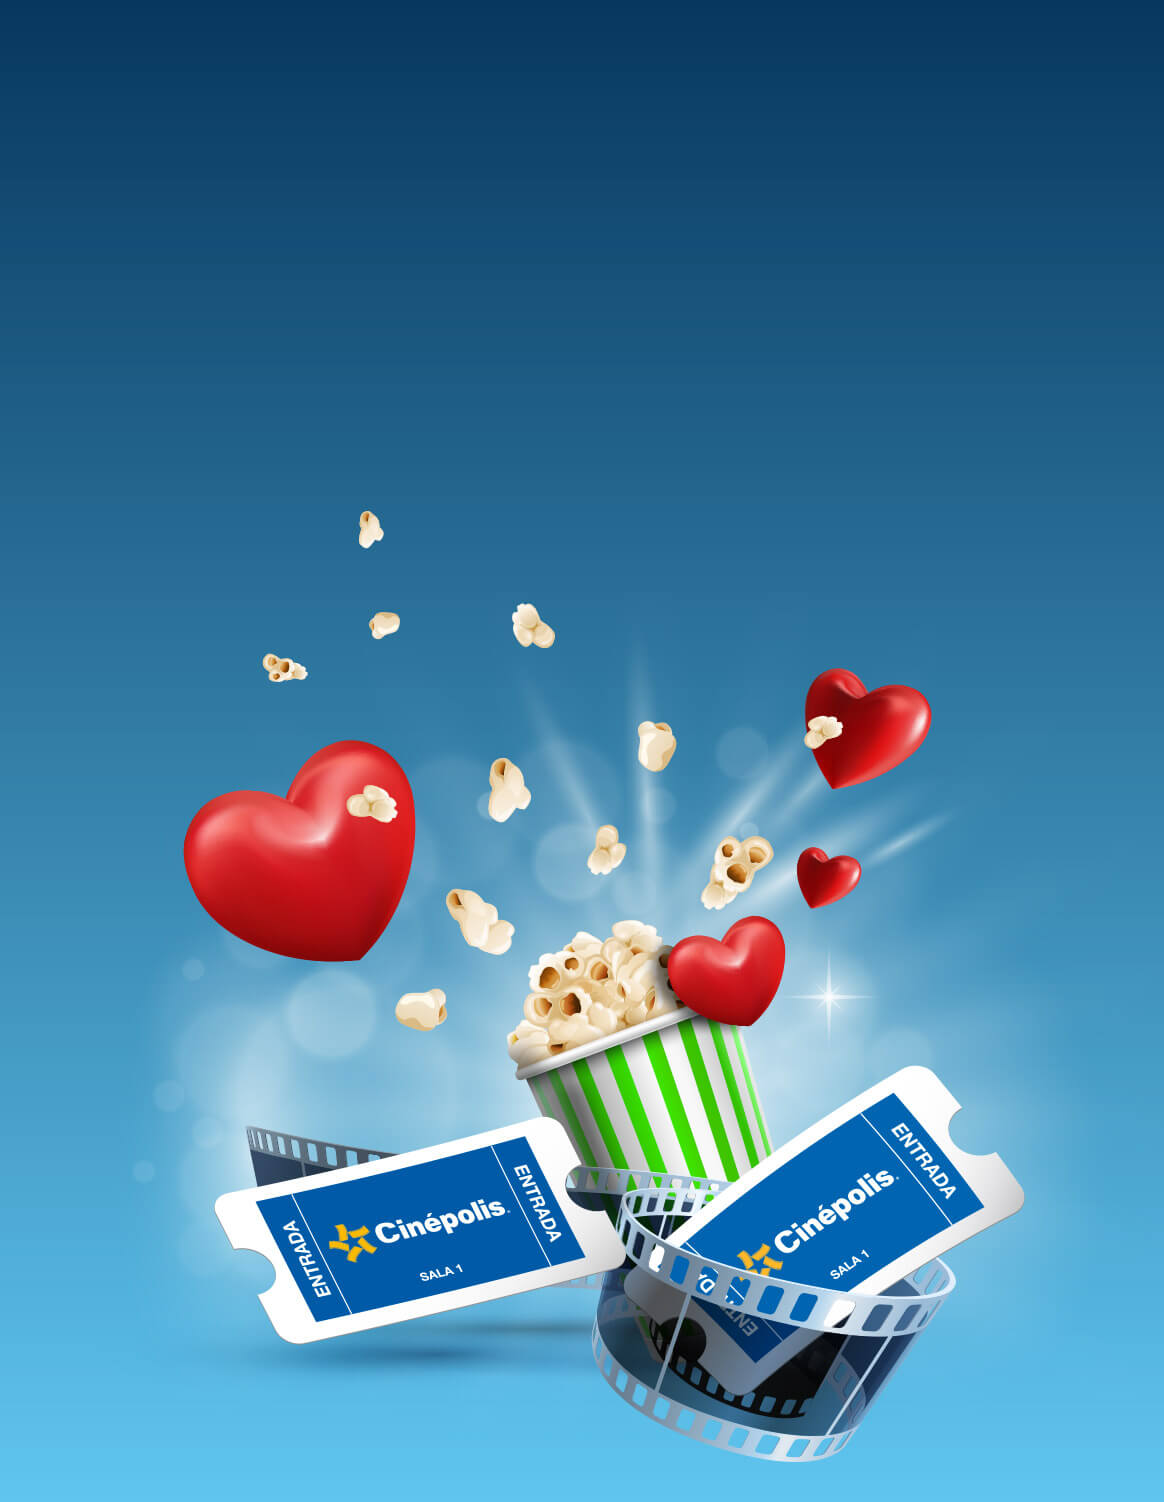 Movistar boletos de cine gratis